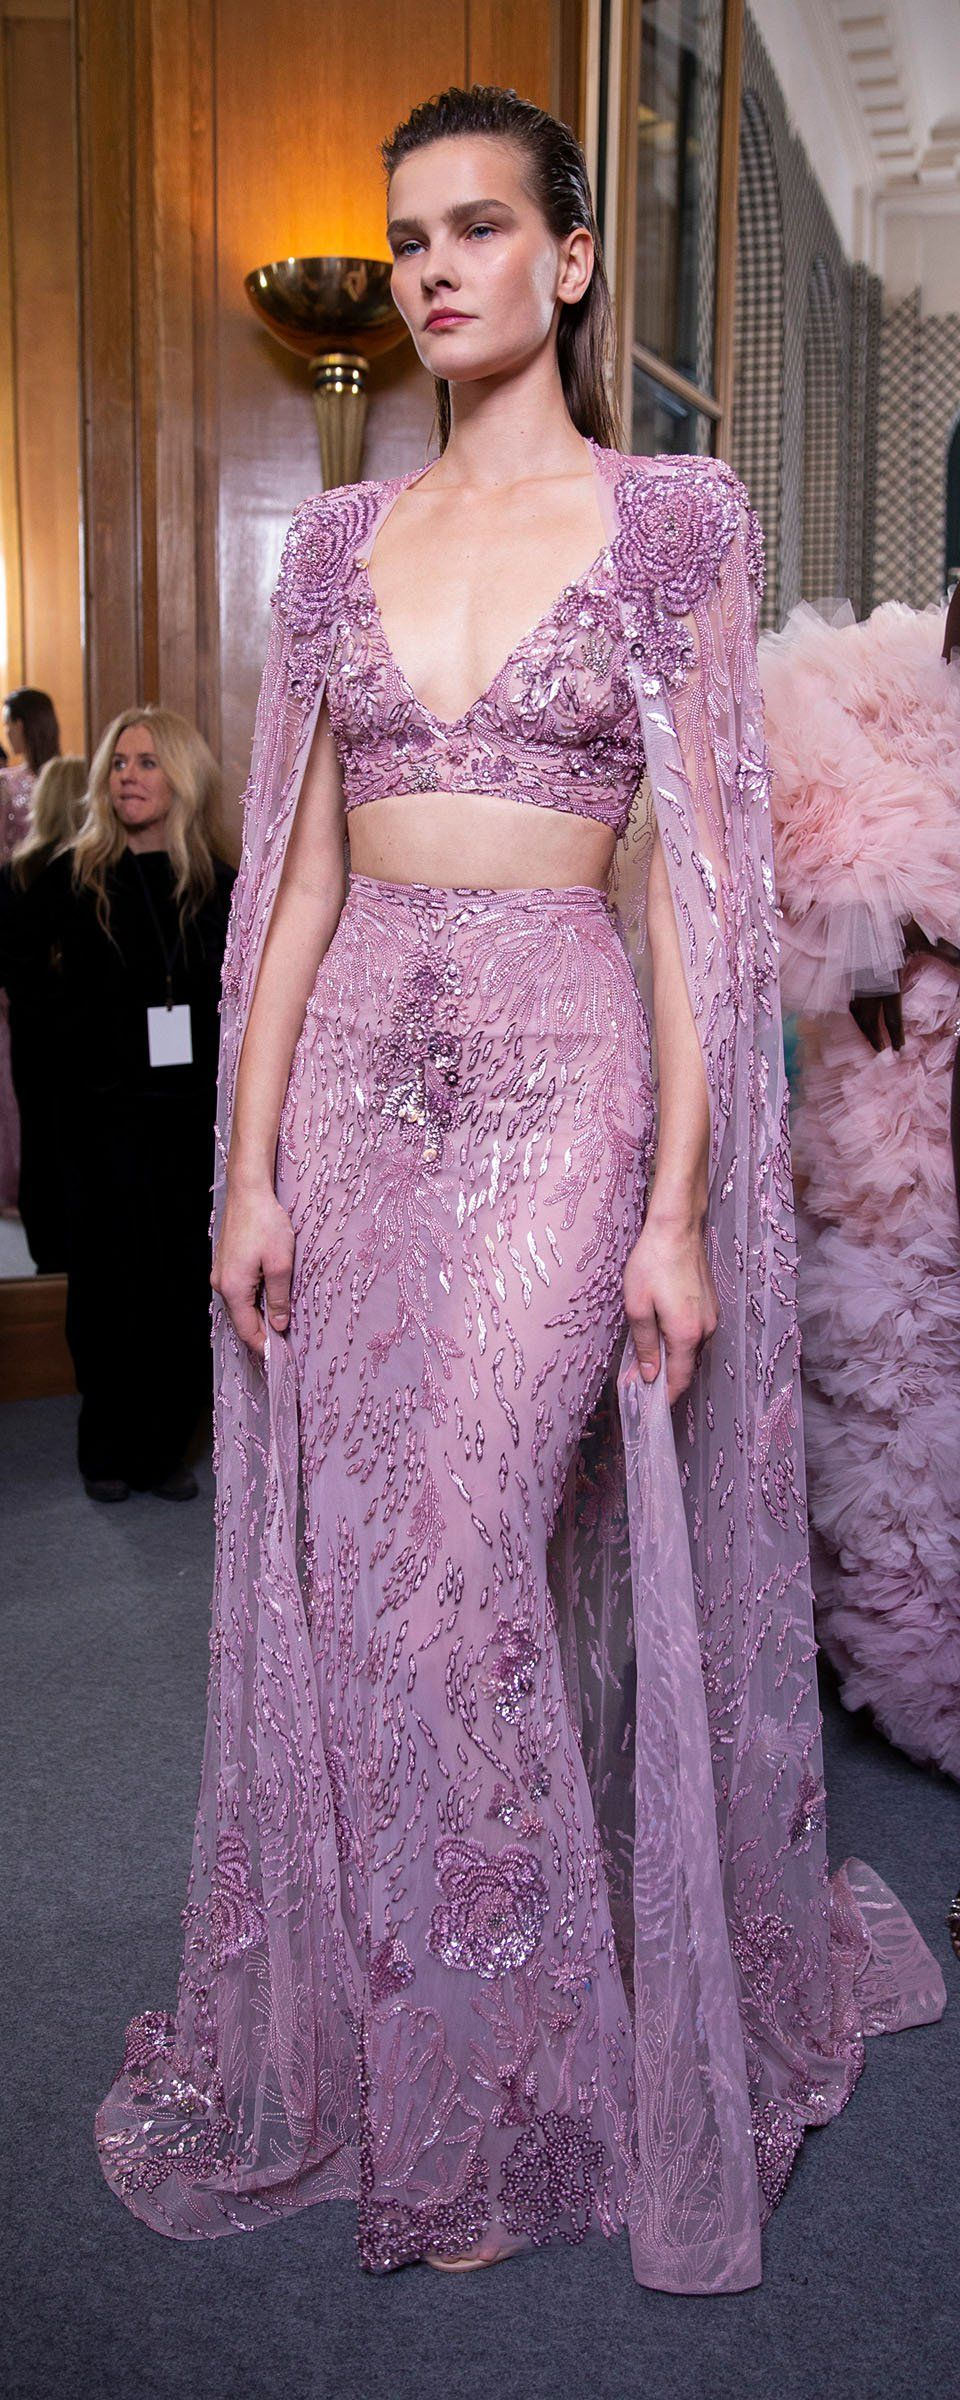 Zuhair Murad Backstage, S/S 2019 - Couture | Couture gowns, High fashion  couture, Haute couture gowns